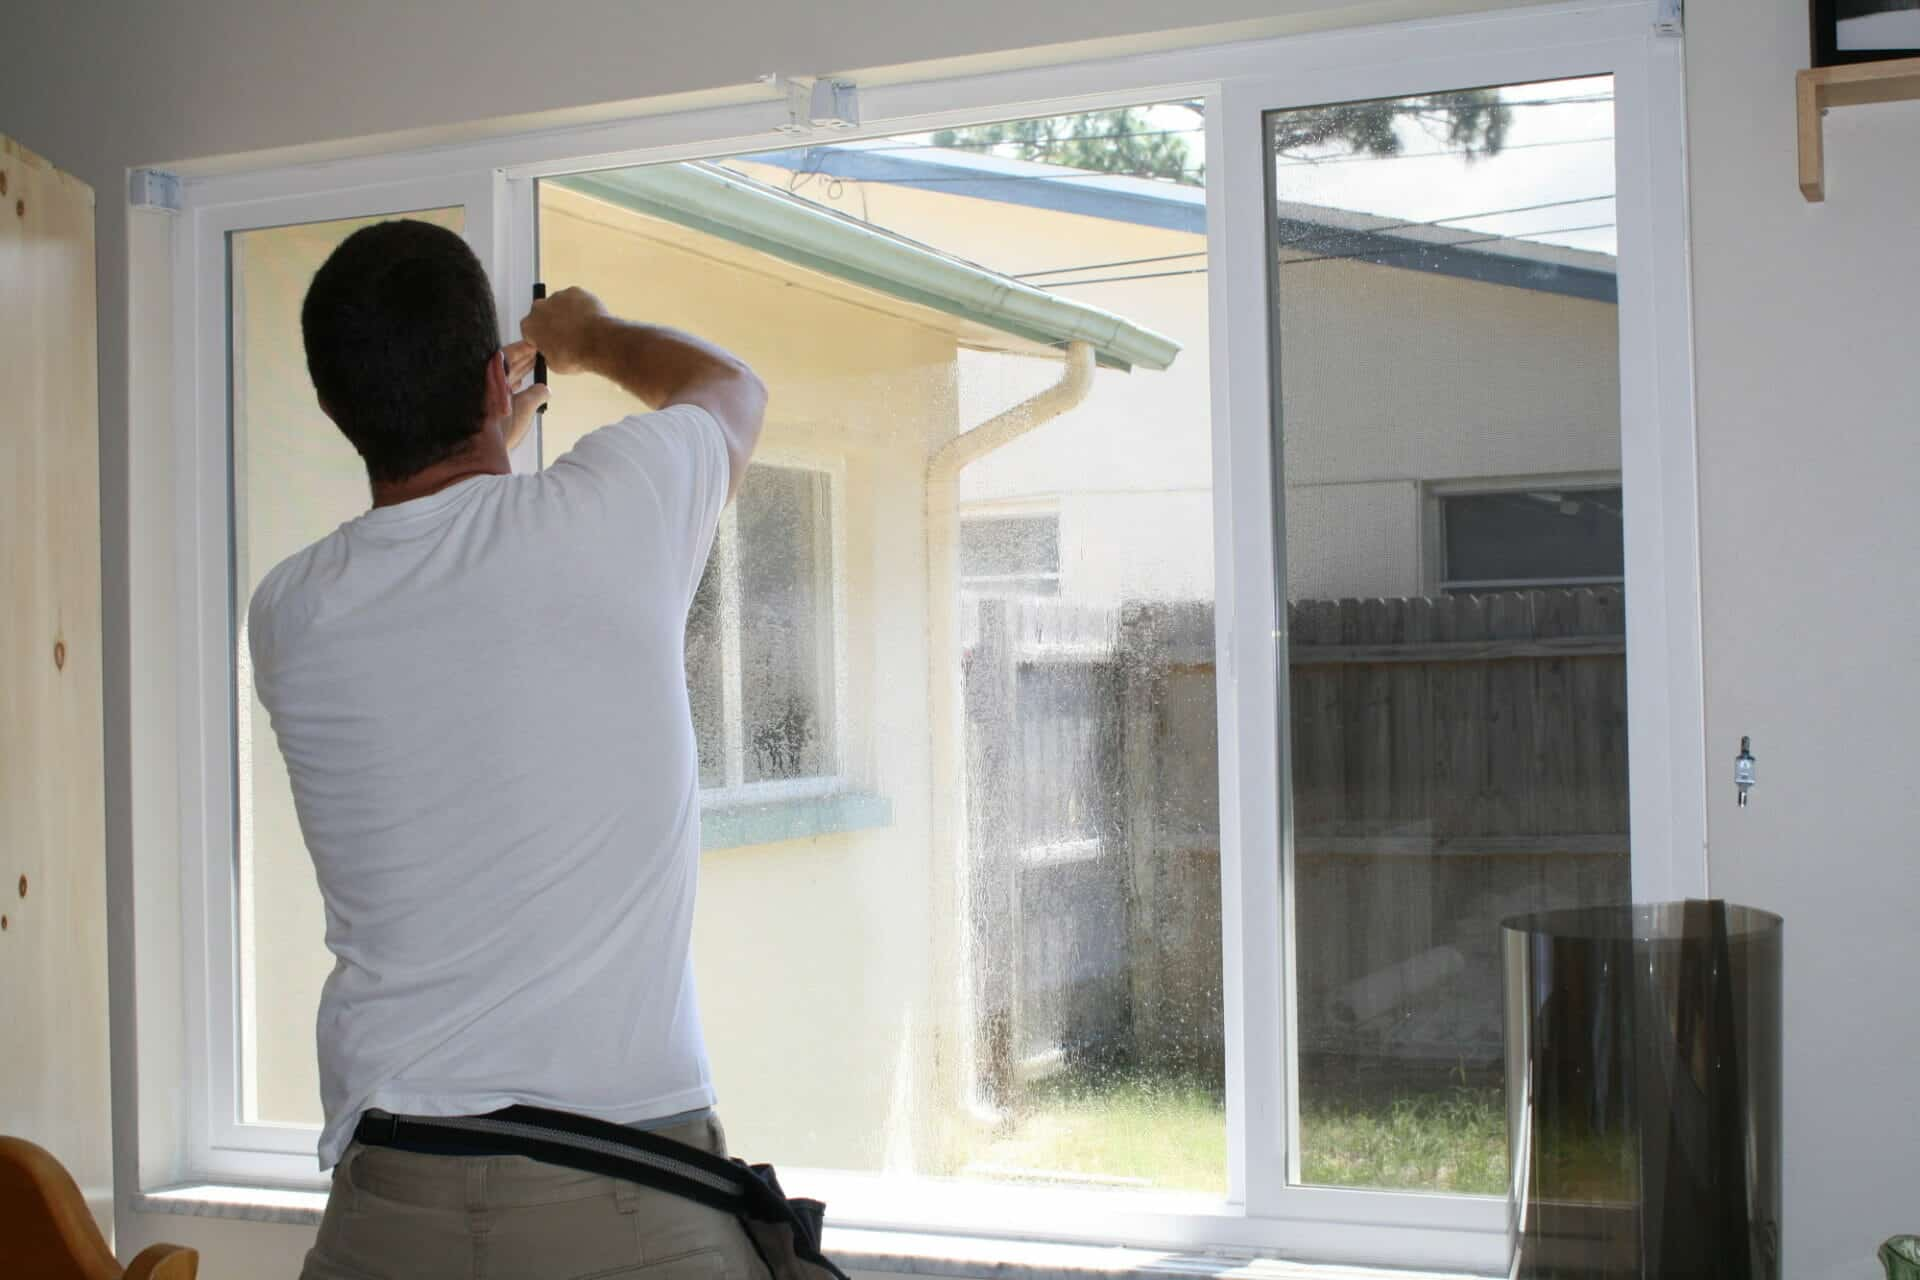 The-Best-Window-Film-Options-for-Privacy-and-Design